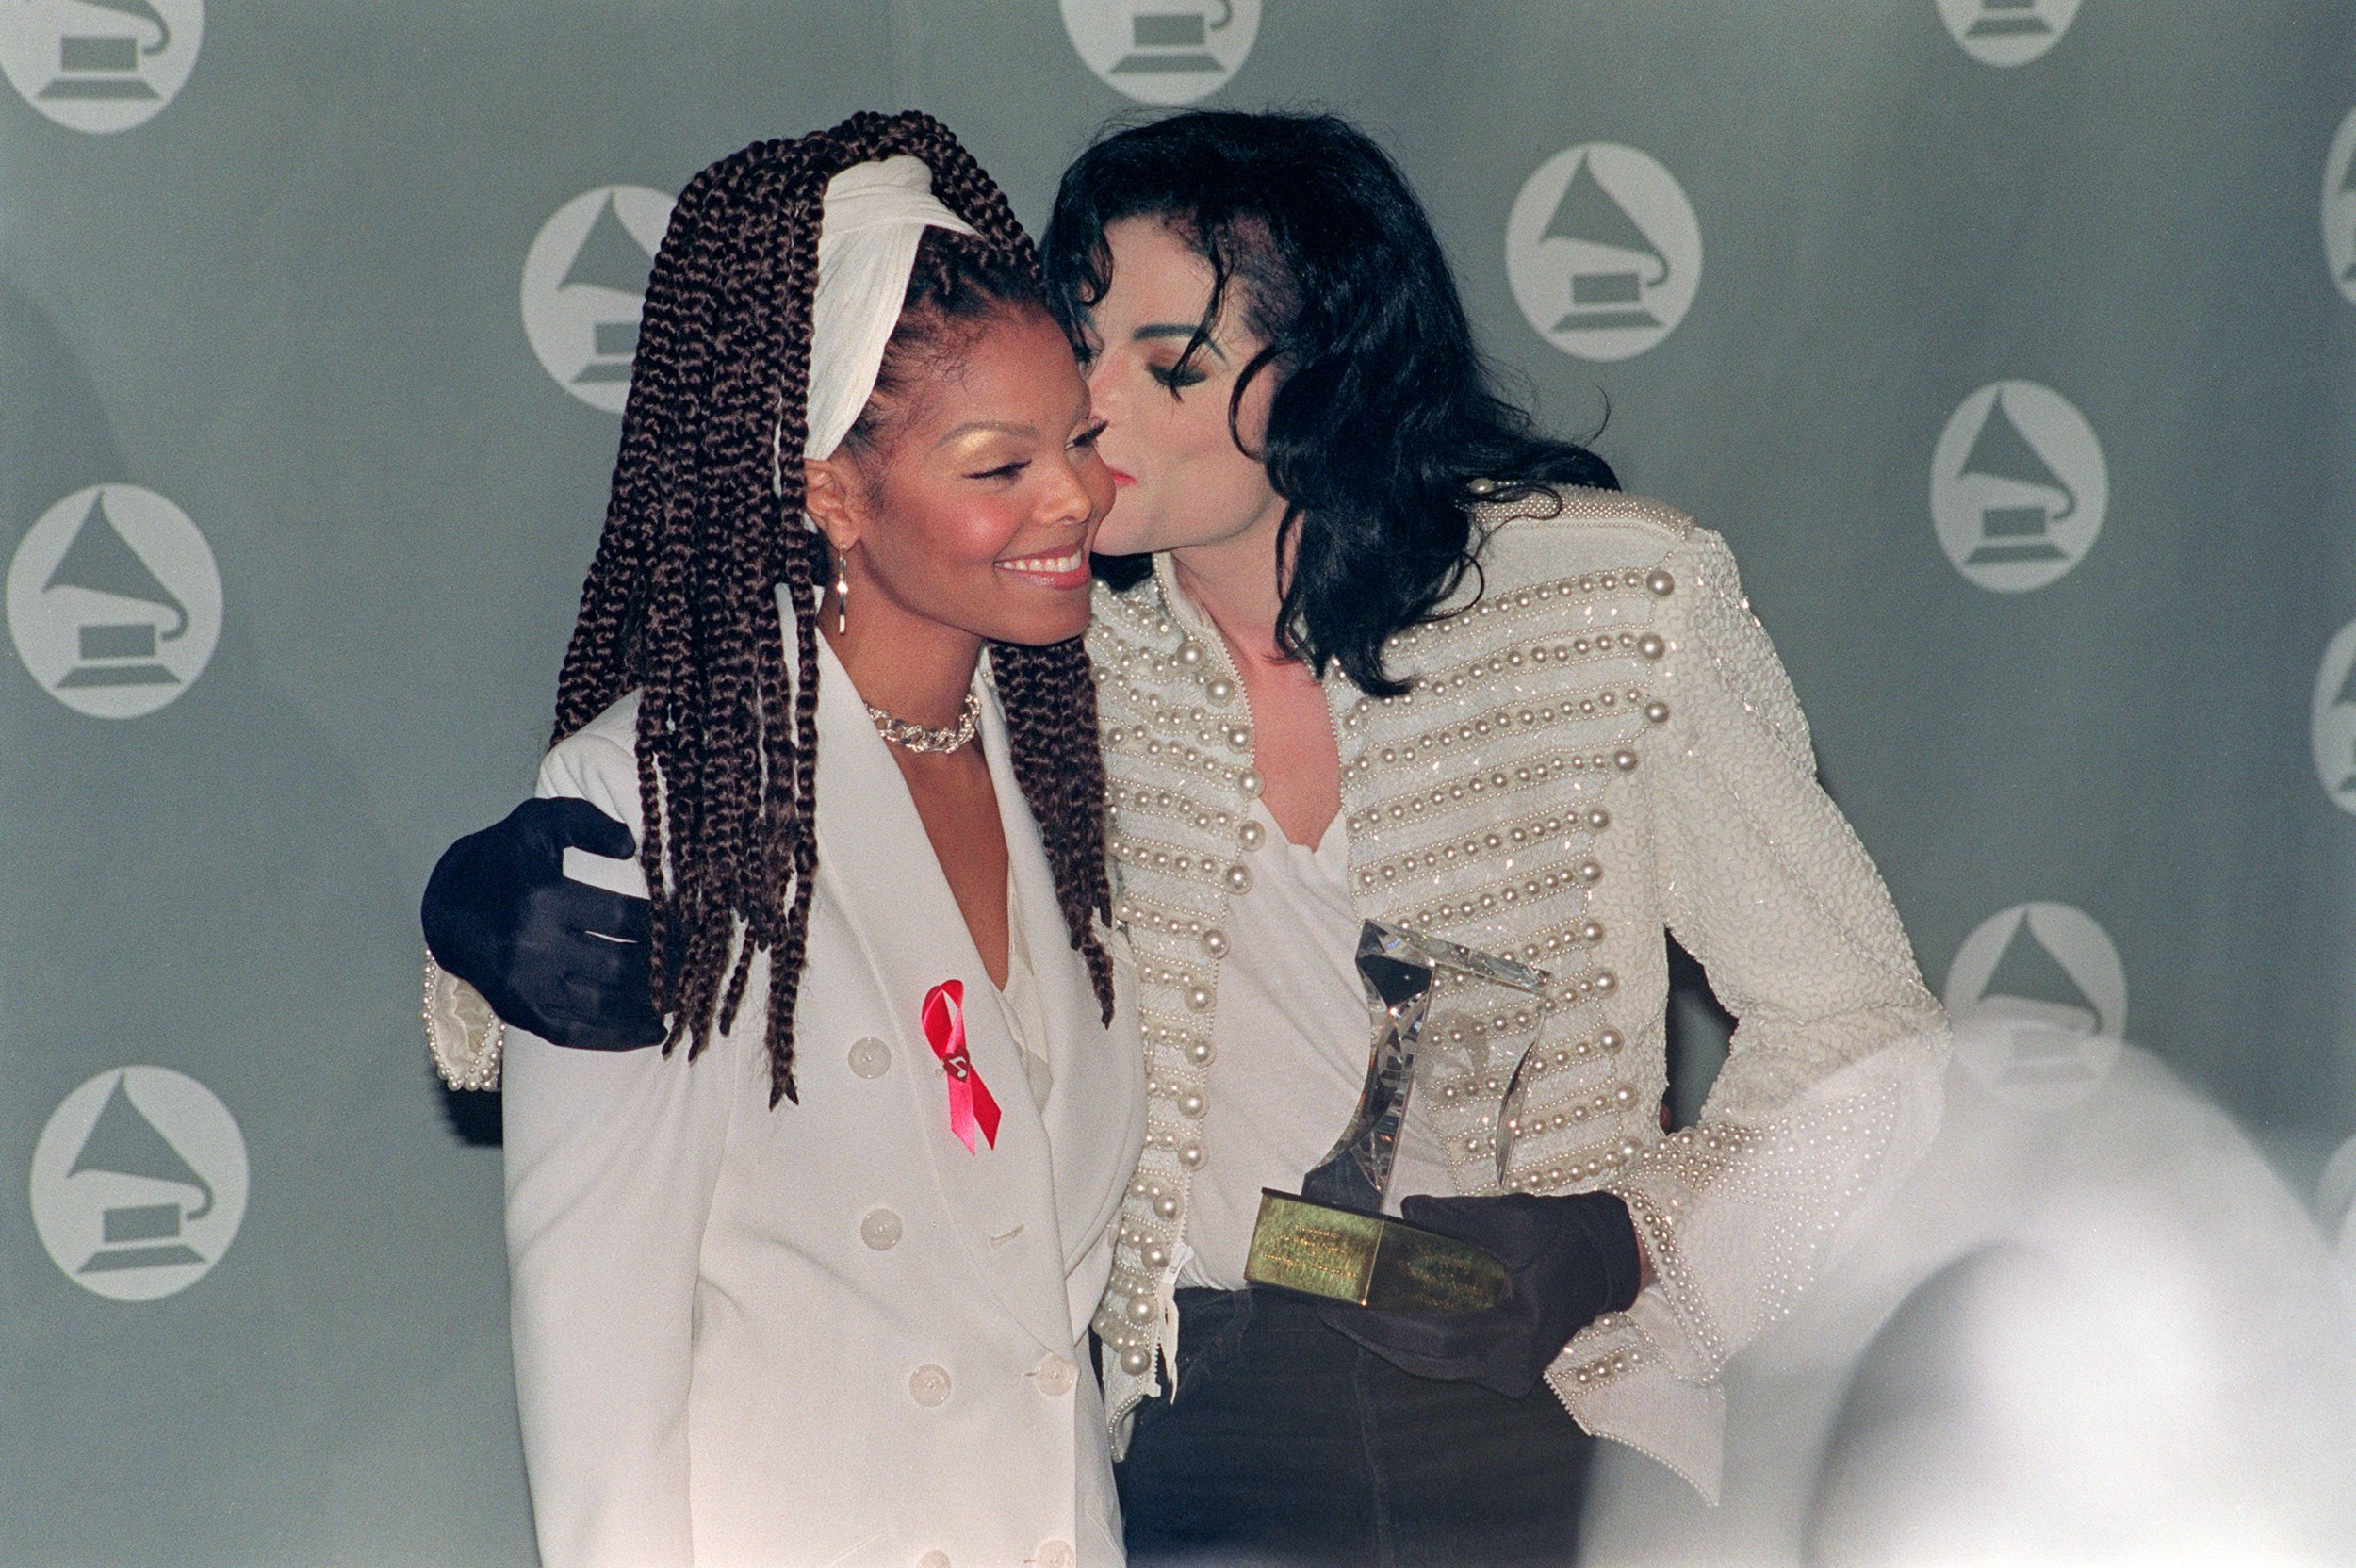 What Has Janet Jackson Said About Michael Jackson's Abuse